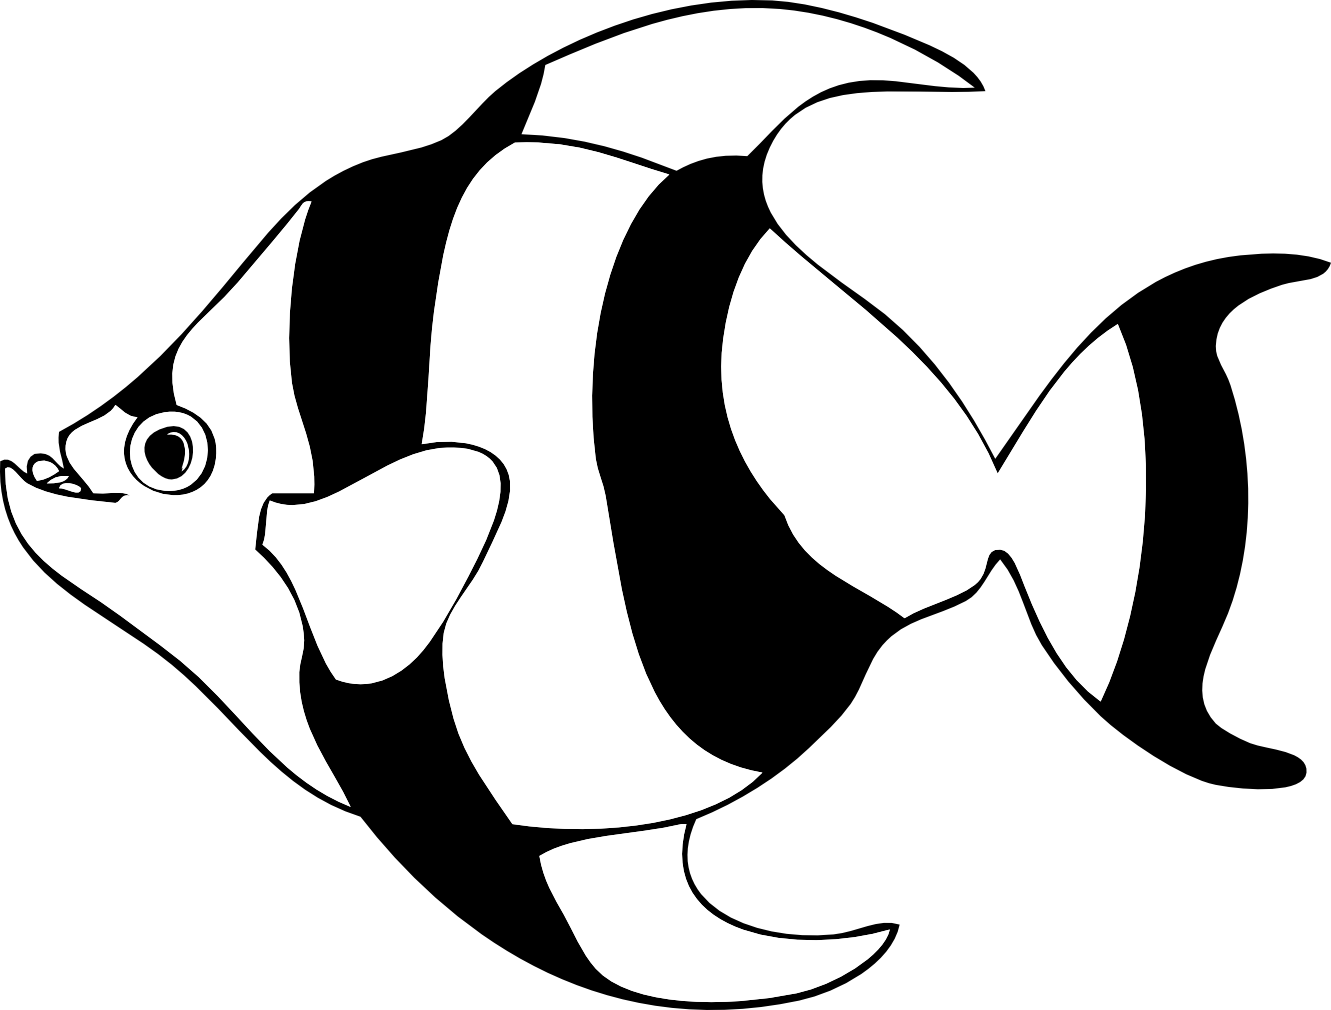 School free download best. Fly fish clipart black and white